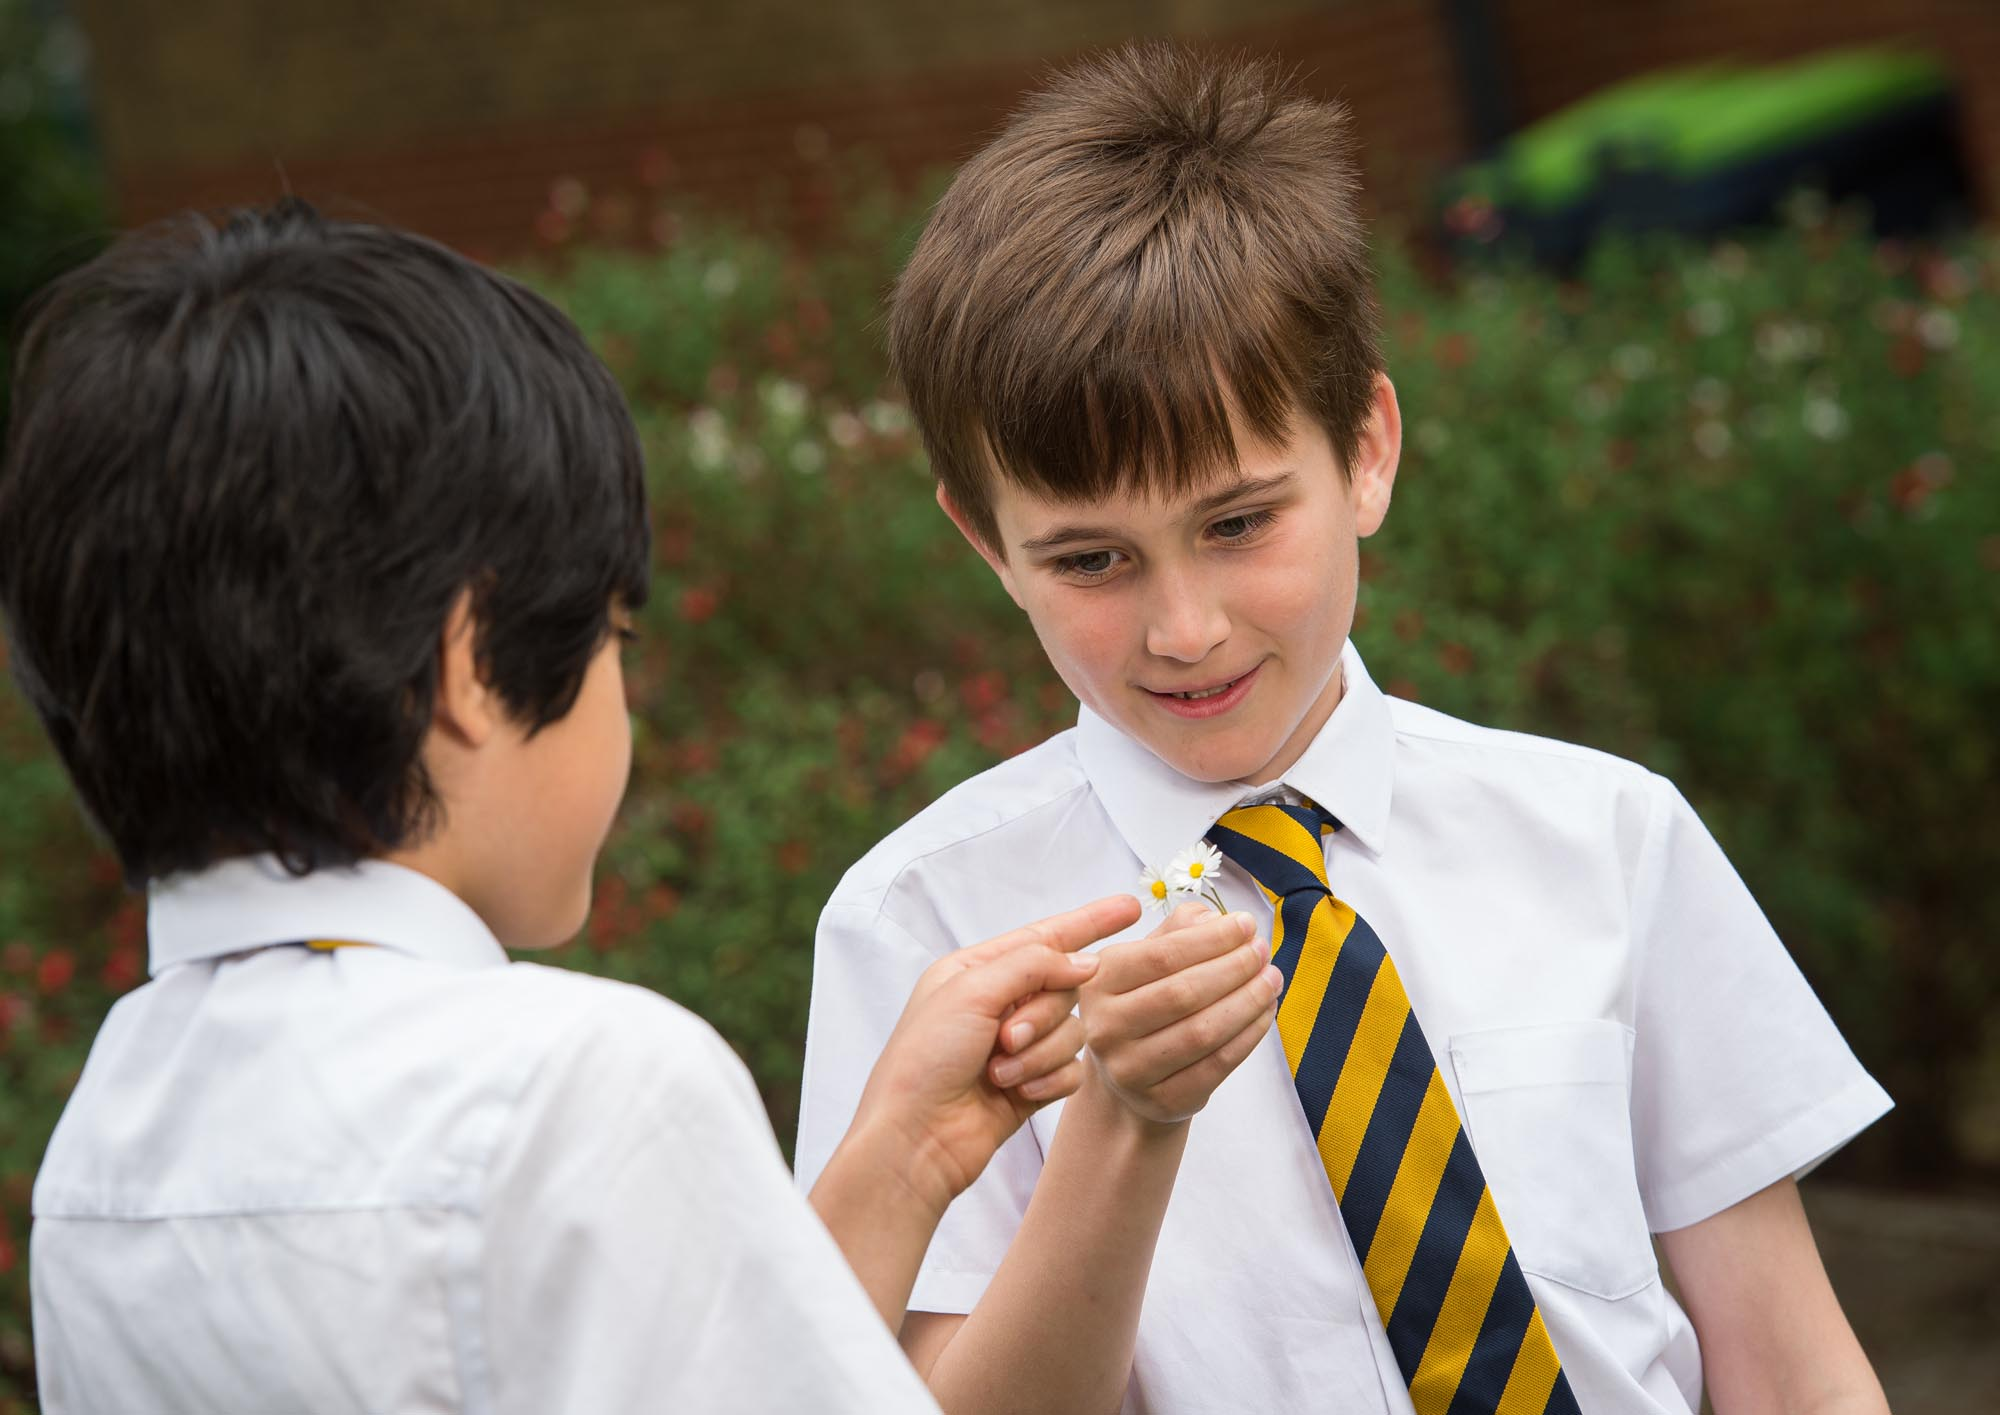 Boys holding at pointing at white flower